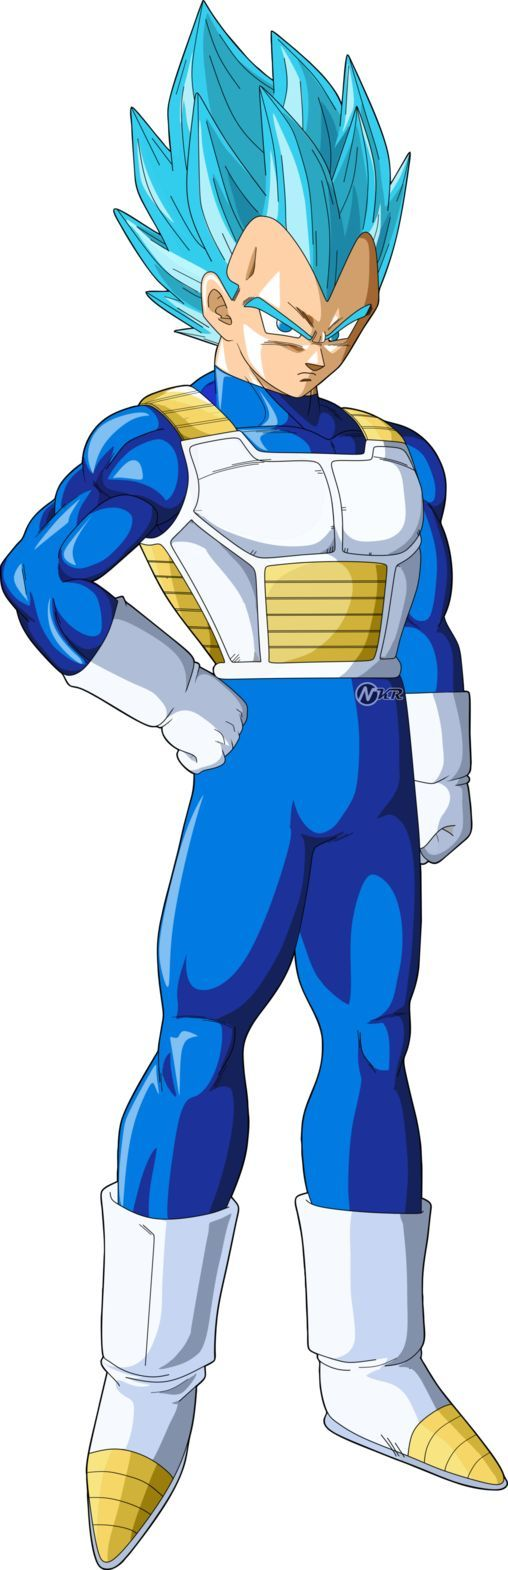 vegeta ssgss by naironkr.deviantart.com on @DeviantArt - Visit now for 3D Dragon Ball Z compression shirts now on sale! #dragonball #dbz #dragonballsuper